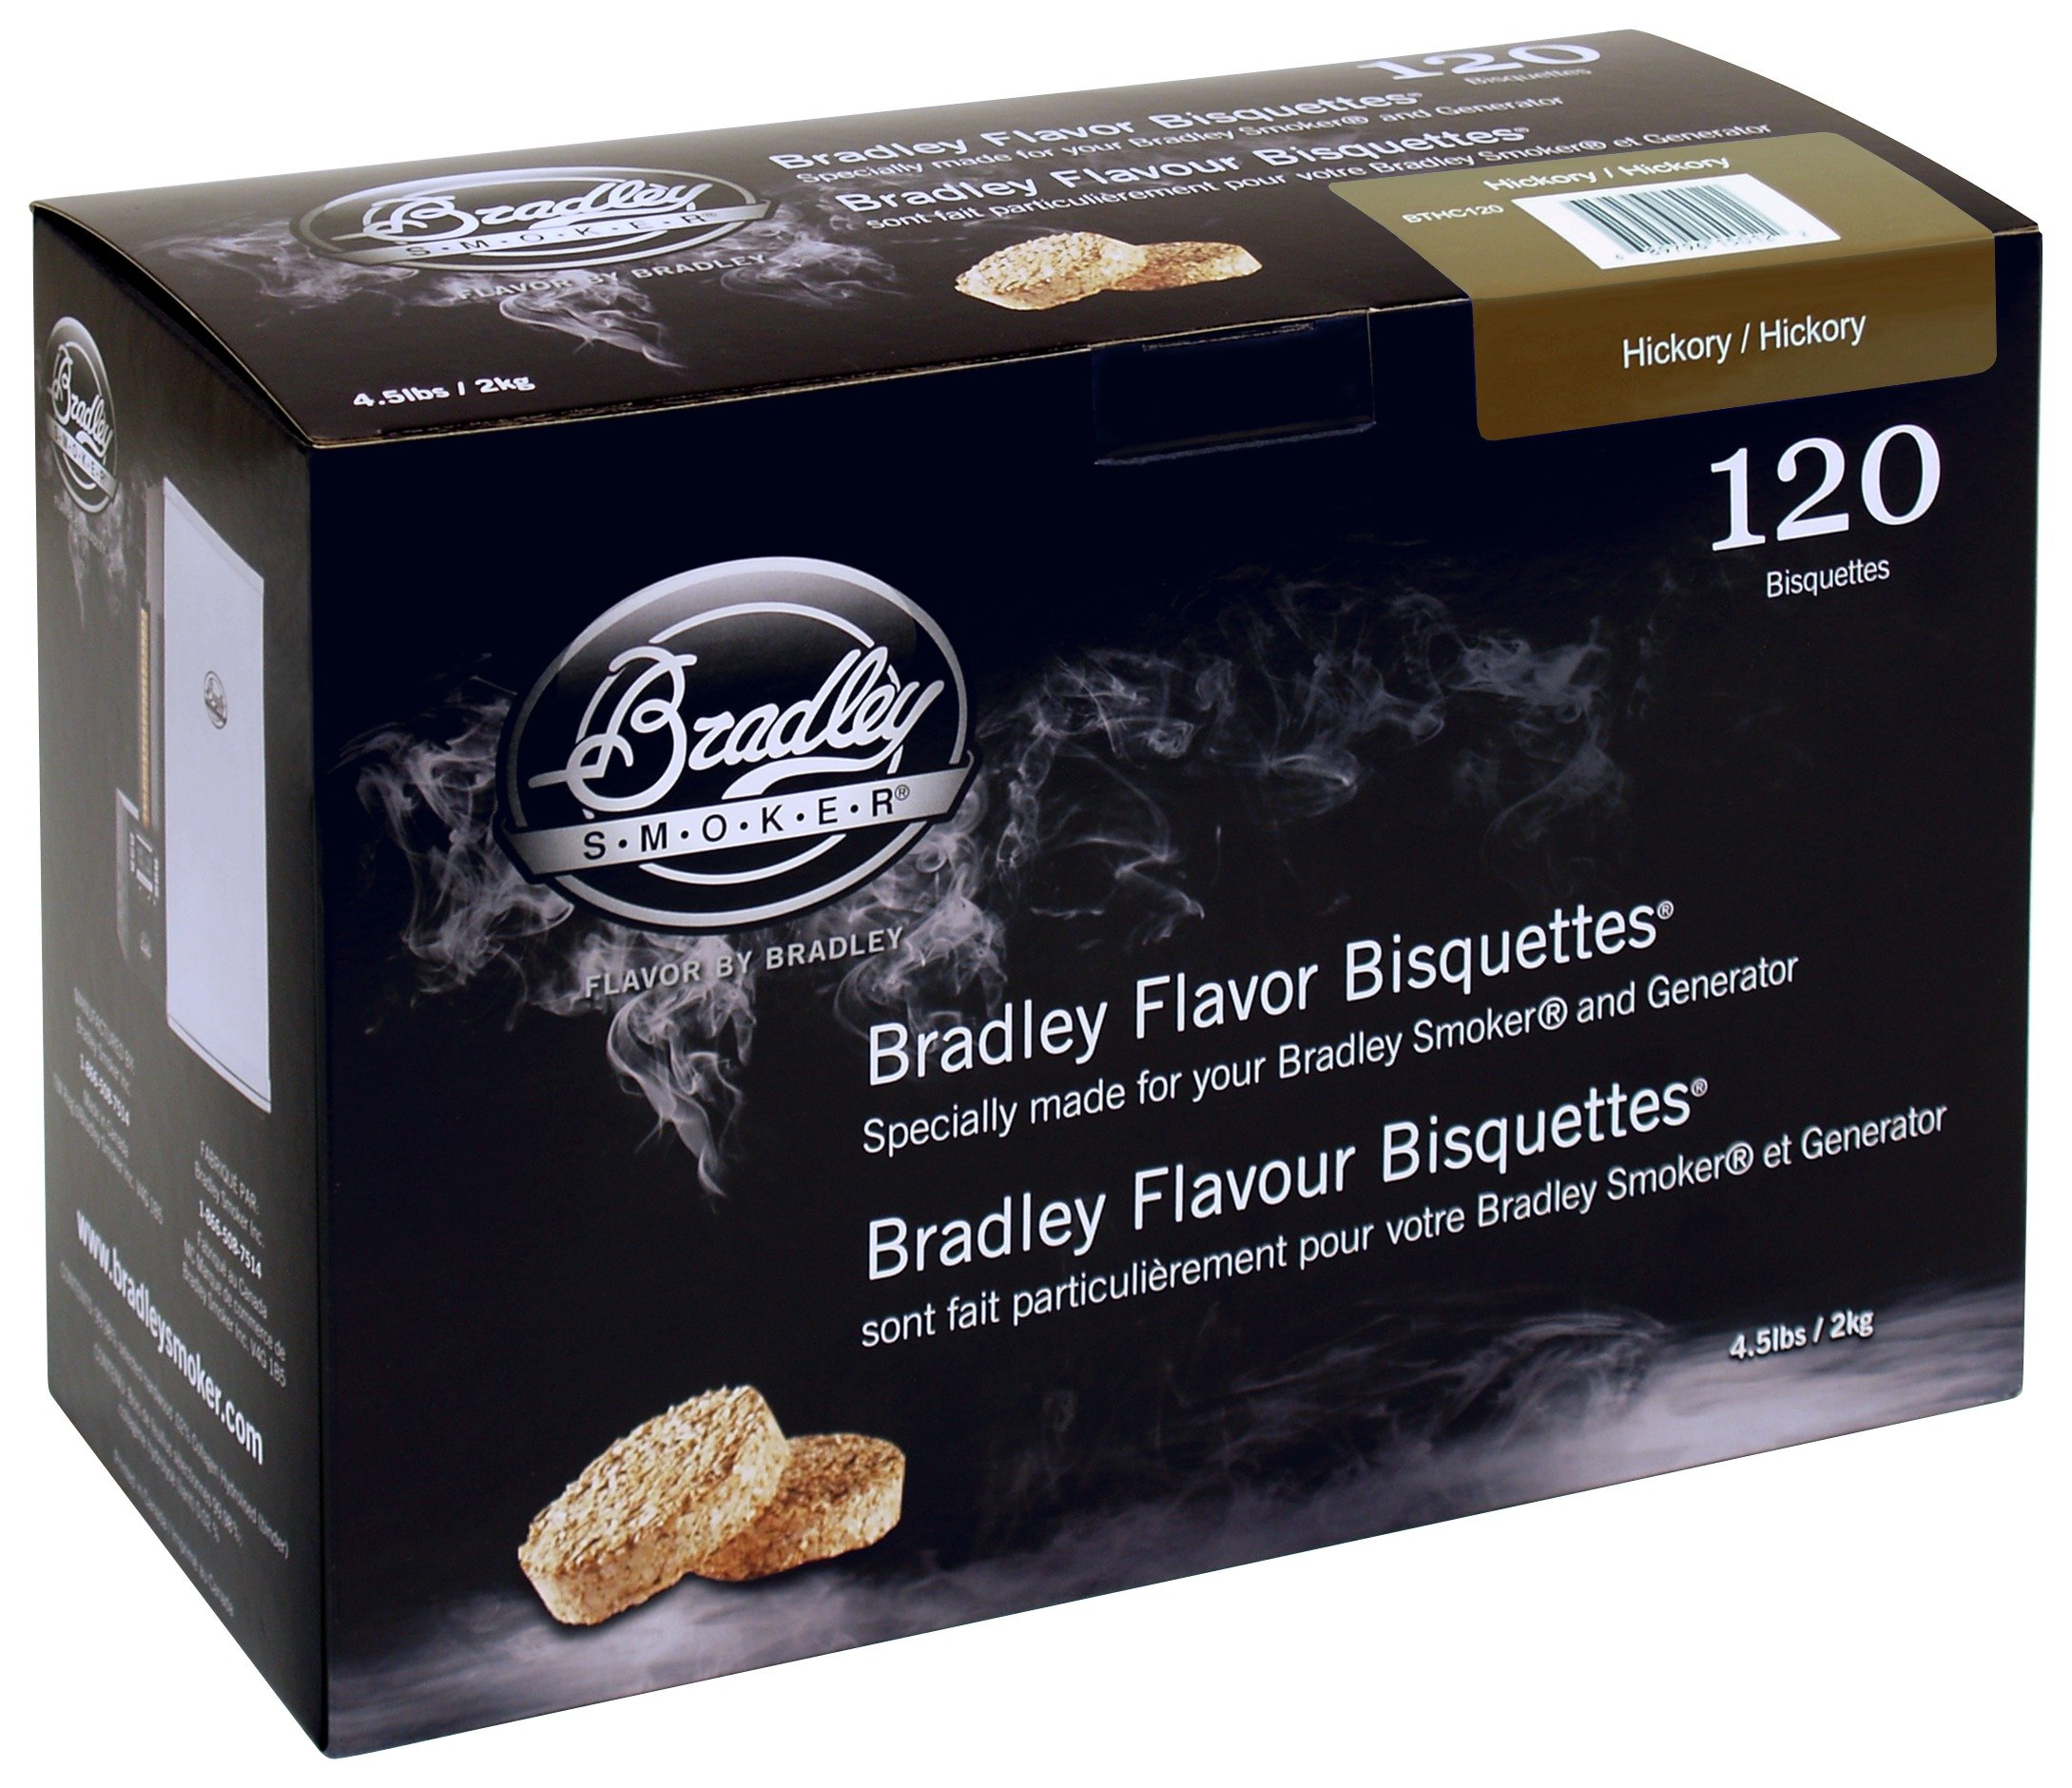 Image of Bradley Smoker - Hickory Bisquettes - 120 Pack